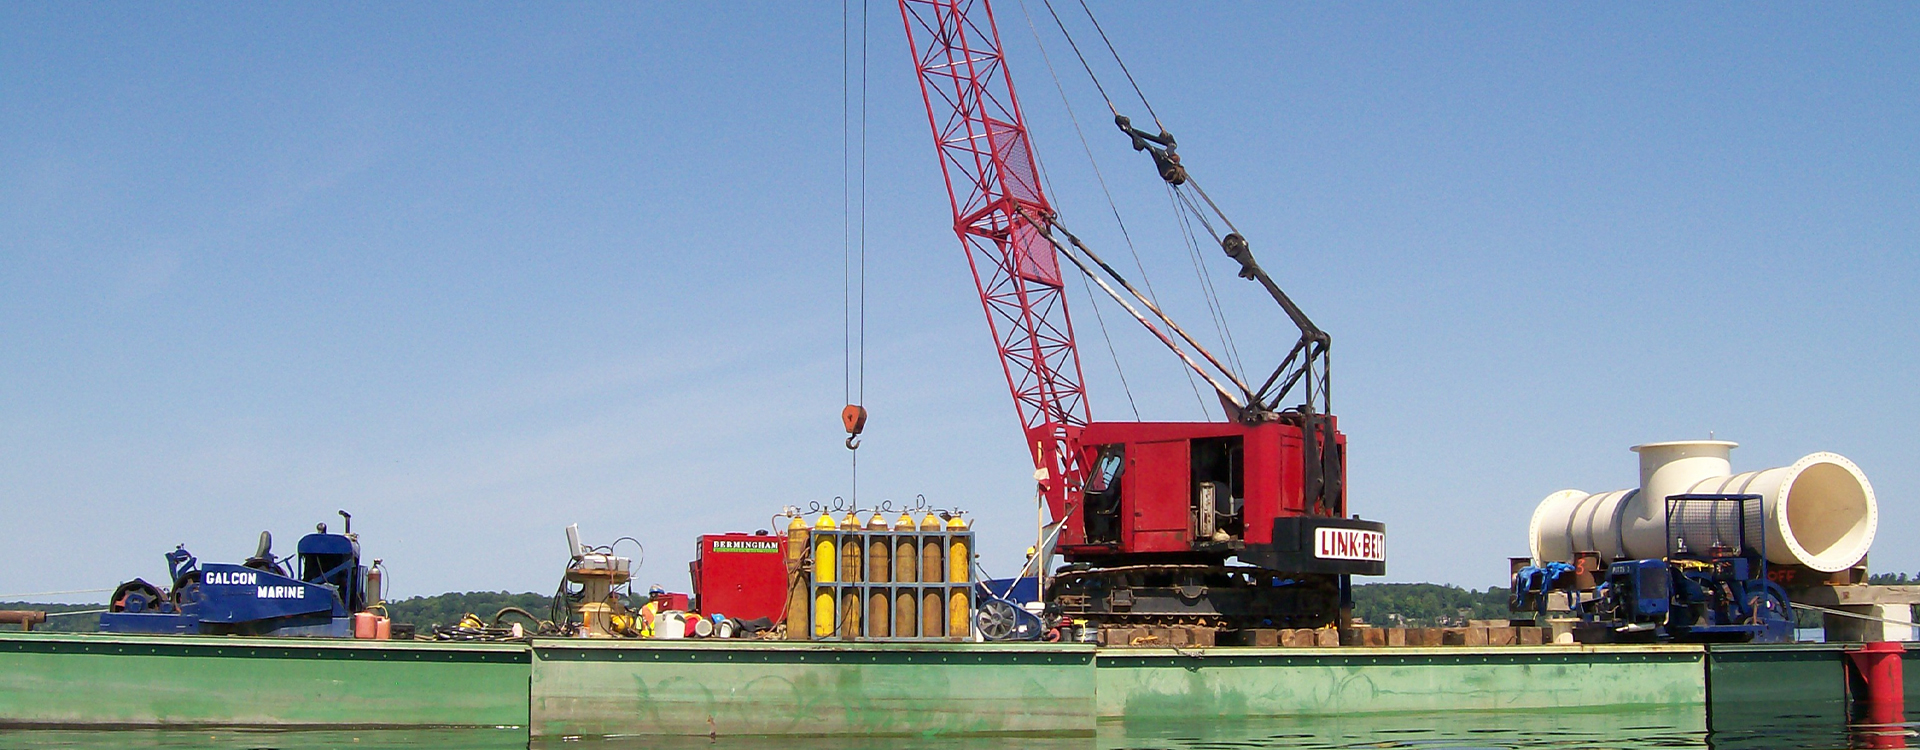 We are Fully Insured, Bondable, and Ready to Meet All Your Marine Project Requirements